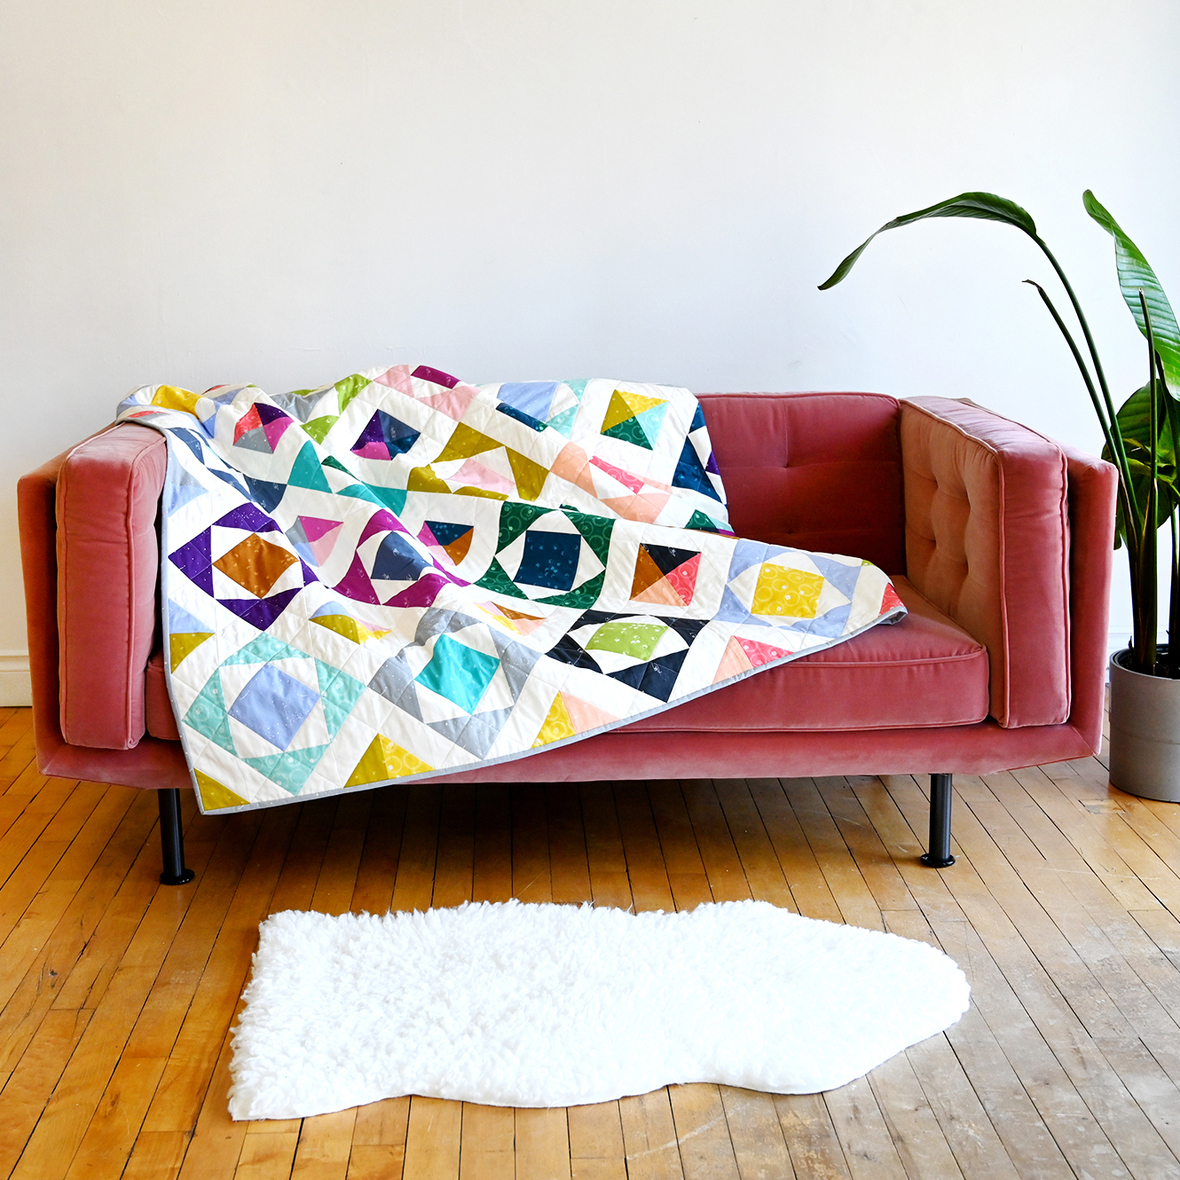 Raw-Diamond-on-Couch-2-square